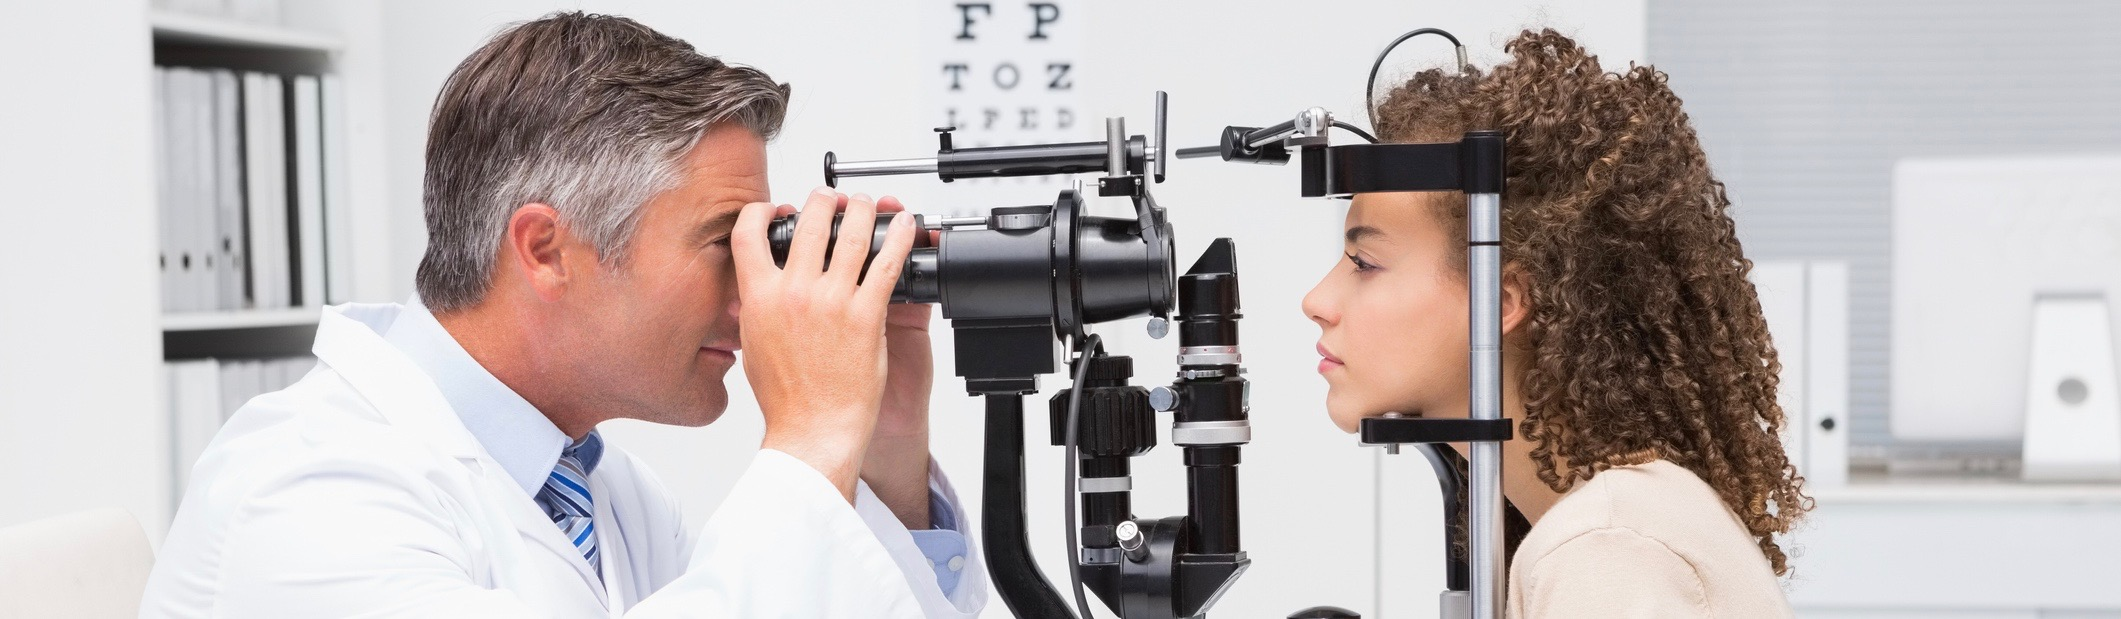 Factors To Consider Before Deciding On LASIK Surgery